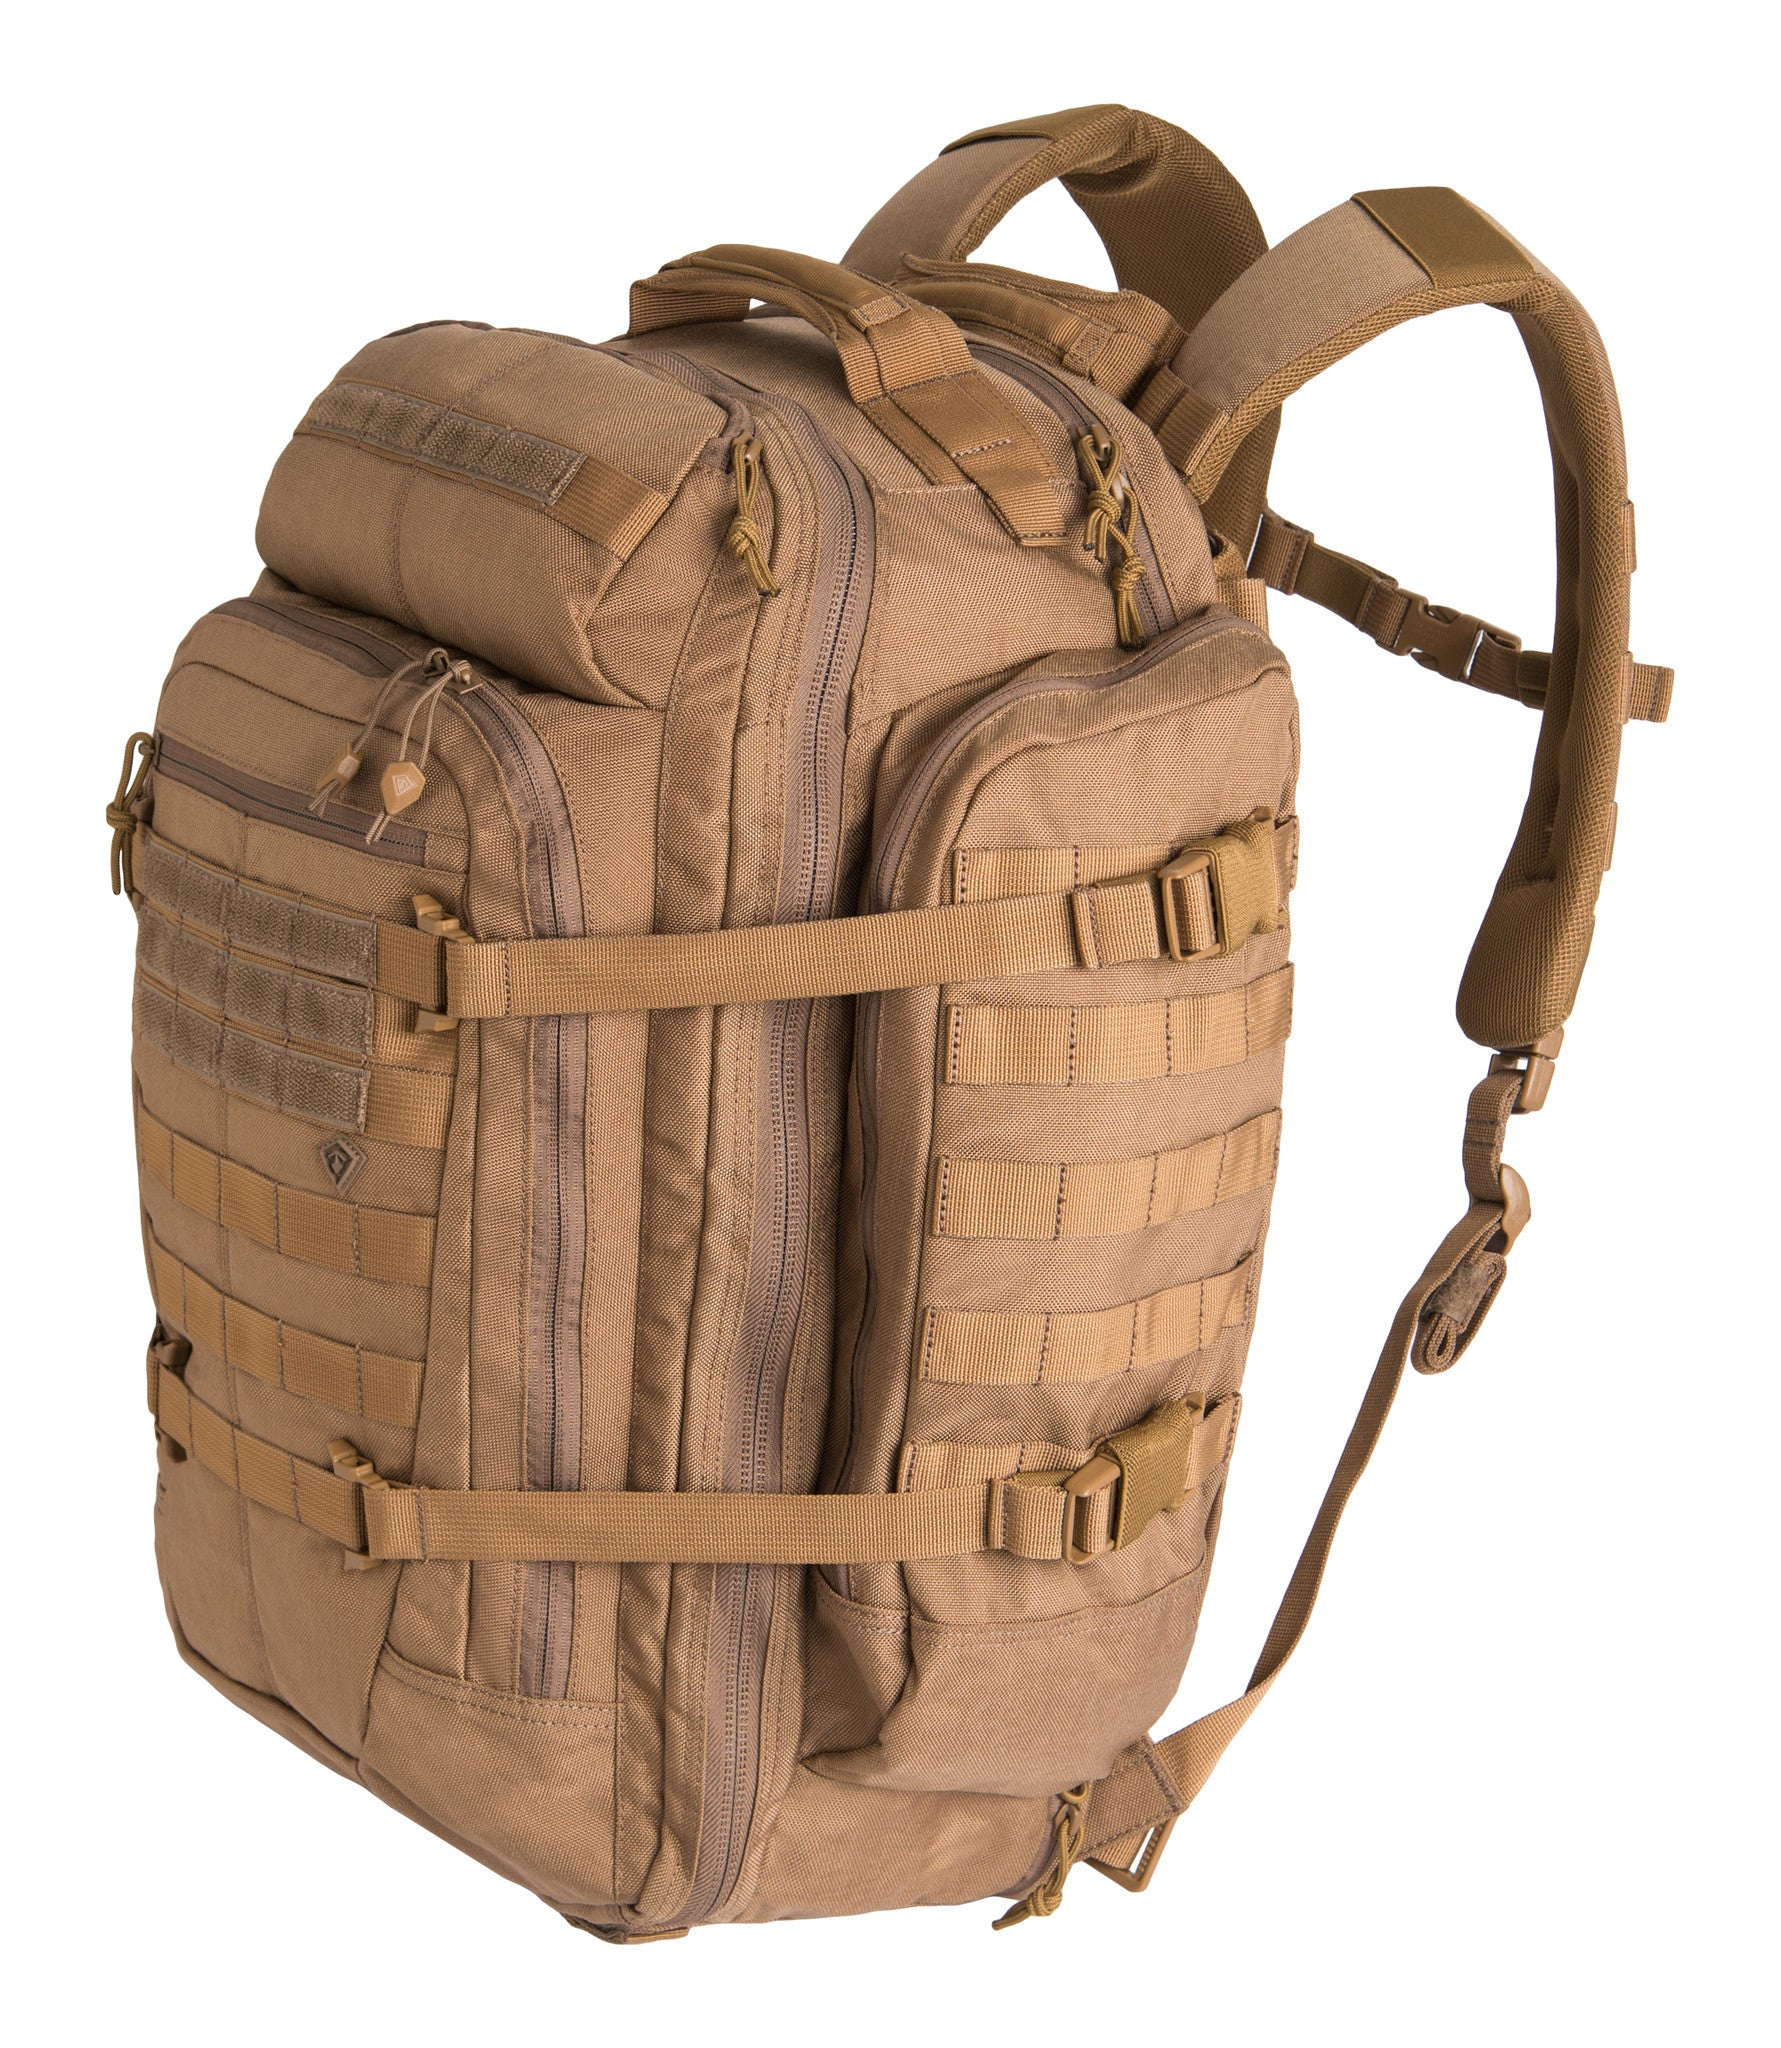 c3229a21d7 Specialist 3-Day Backpack